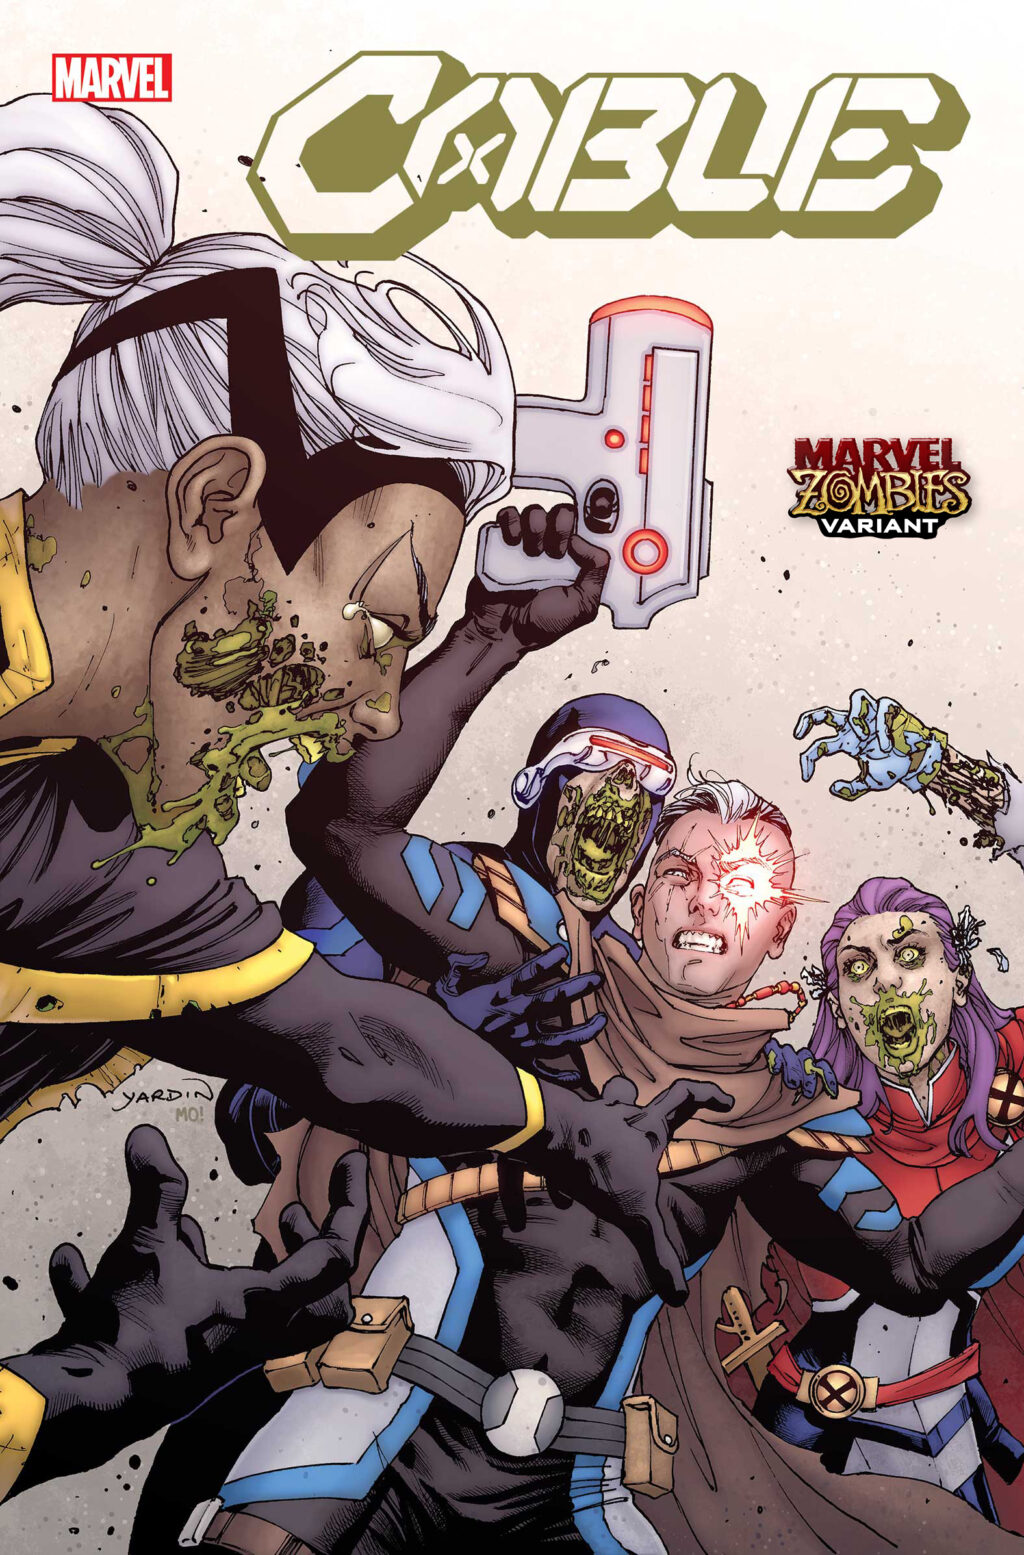 CABLE2020002 ZOMBIE VAR 1024x1555 - Image Gallery: The Undead Rise in April's MARVEL ZOMBIES Variant Covers